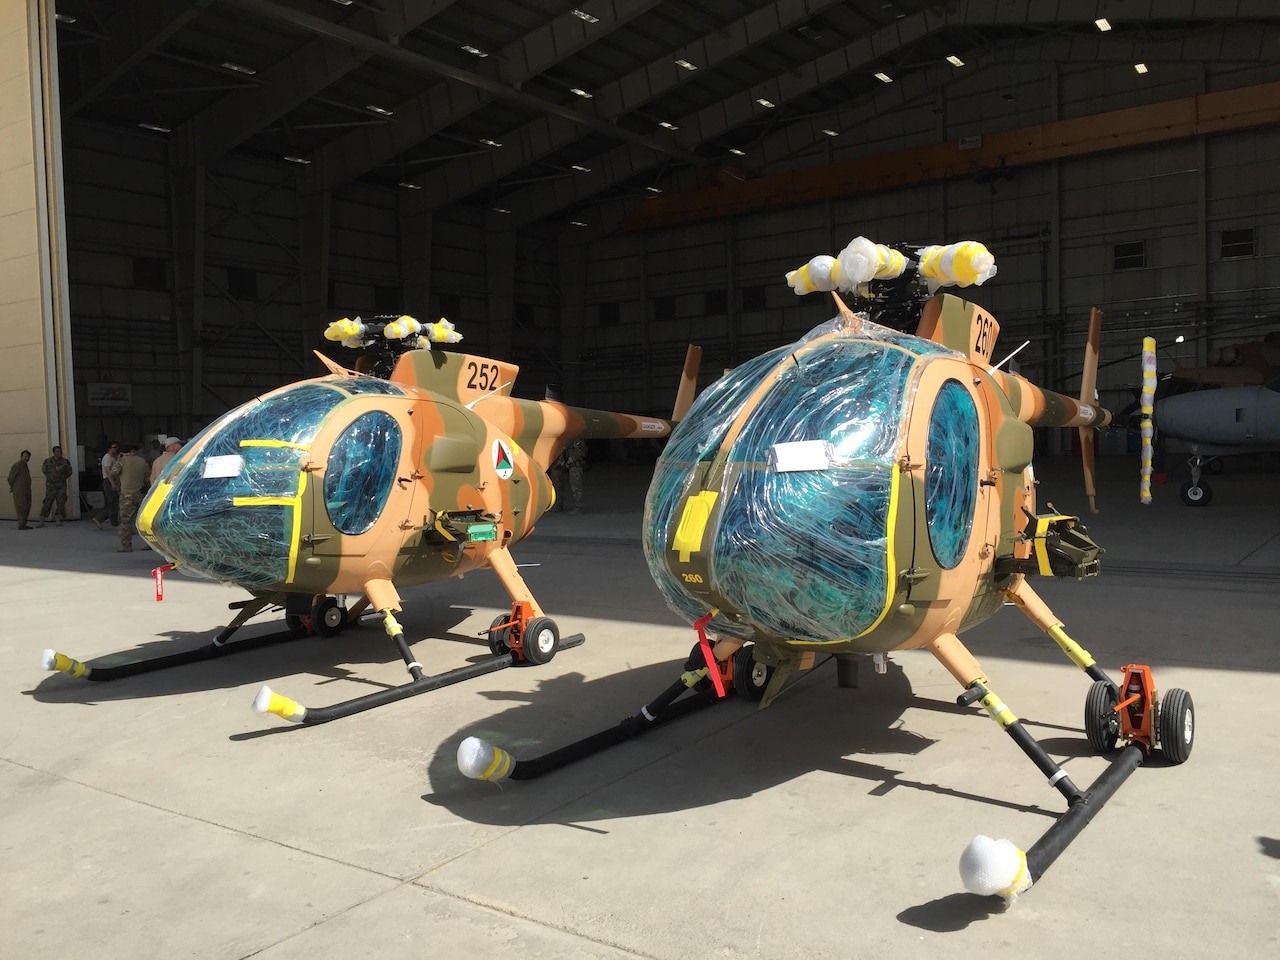 Two new MD-530 Cayuse Warrior helicopters, still with protective wrap on them, are seen at the 438th Air Expeditionary Wing/Train, Advise, Assist Command-Air in Kabul, Afghanistan, July 16, 2016. DoD photo by Lisa Ferdinando